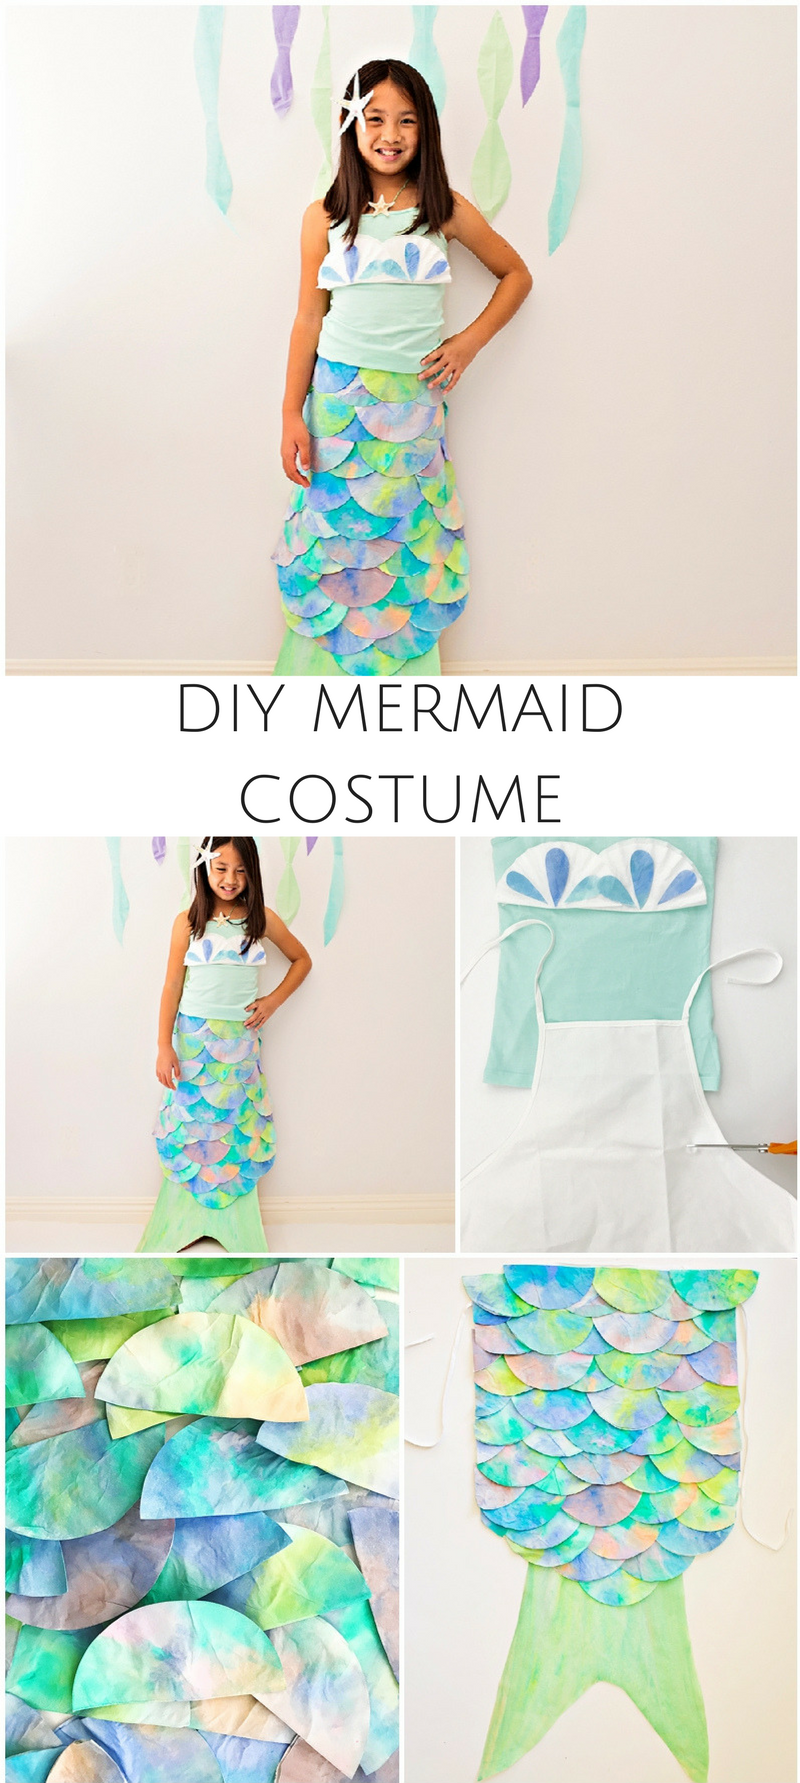 DIY MERMAID COSTUME MADE WITH COFFEE FILTERS Mermaid diy